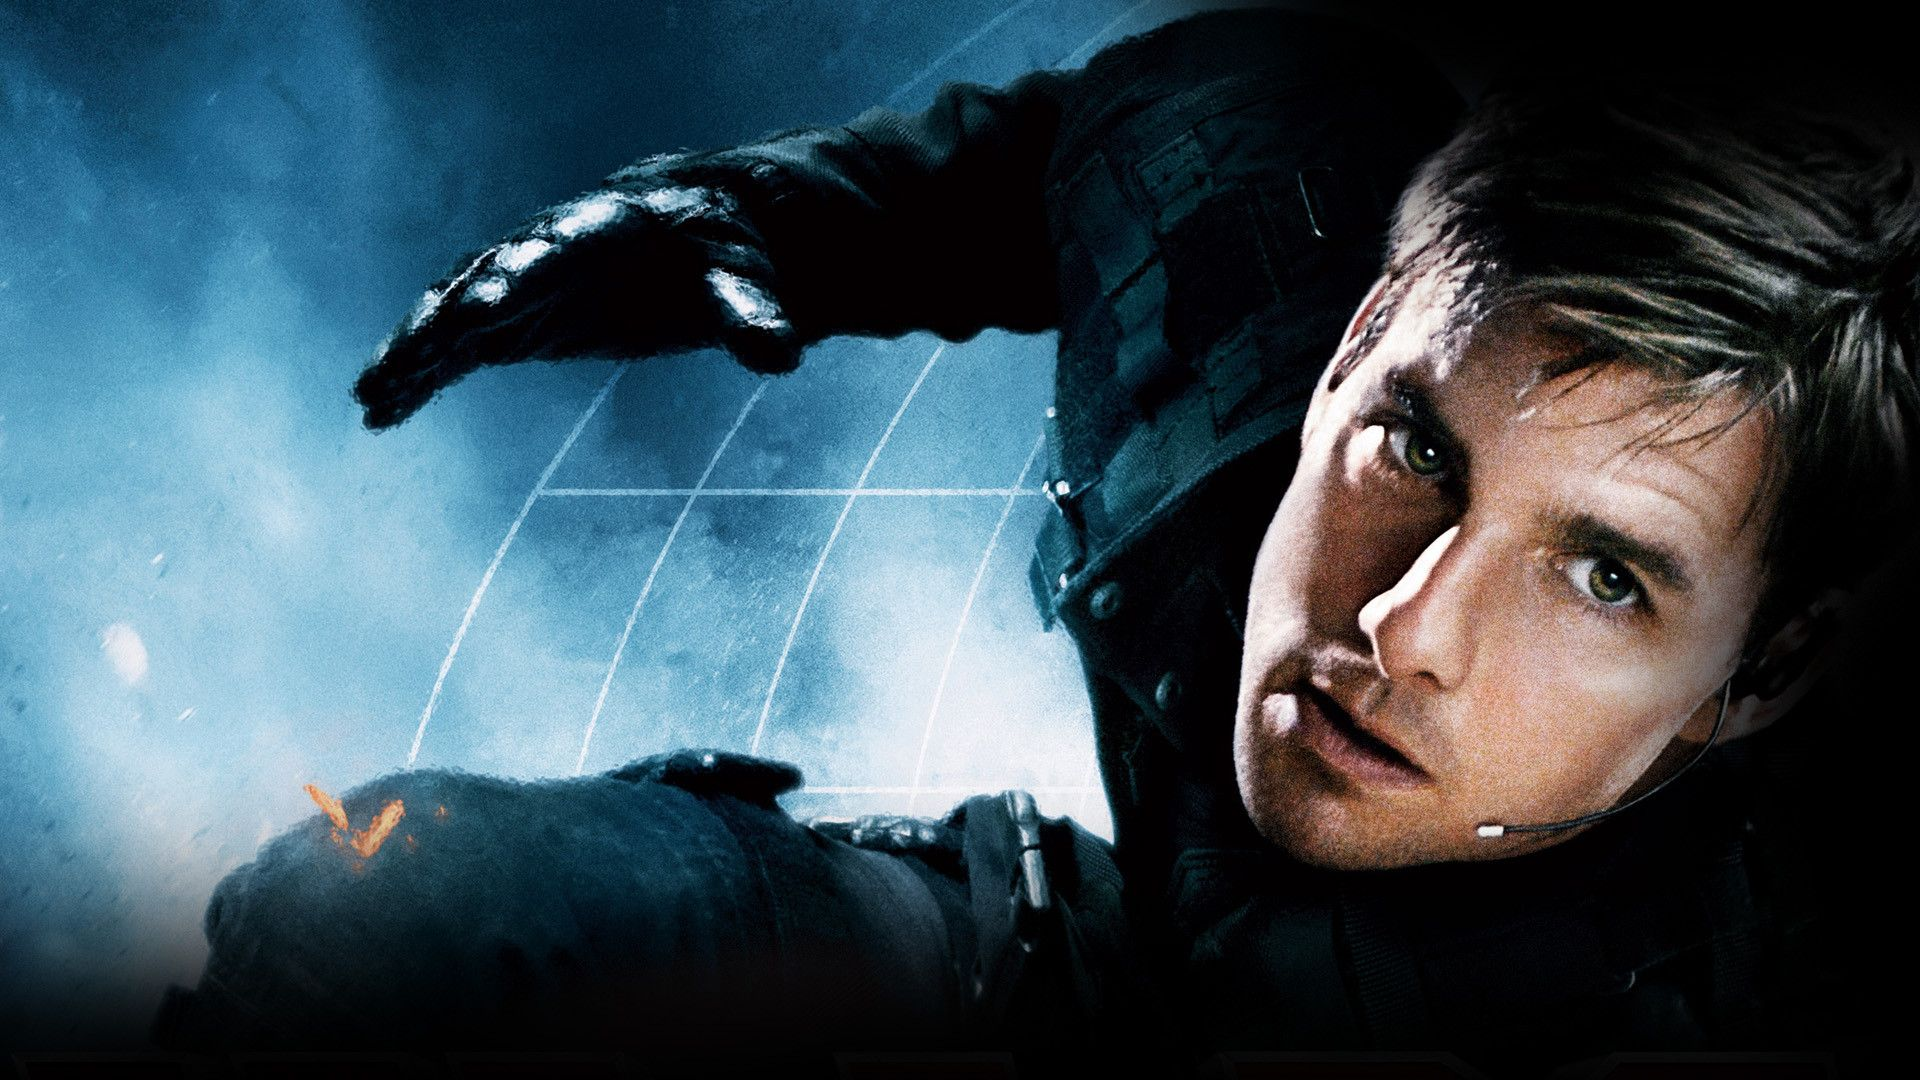 Tom Cruise in Mission Impossible | Tom cruise, Mission ...